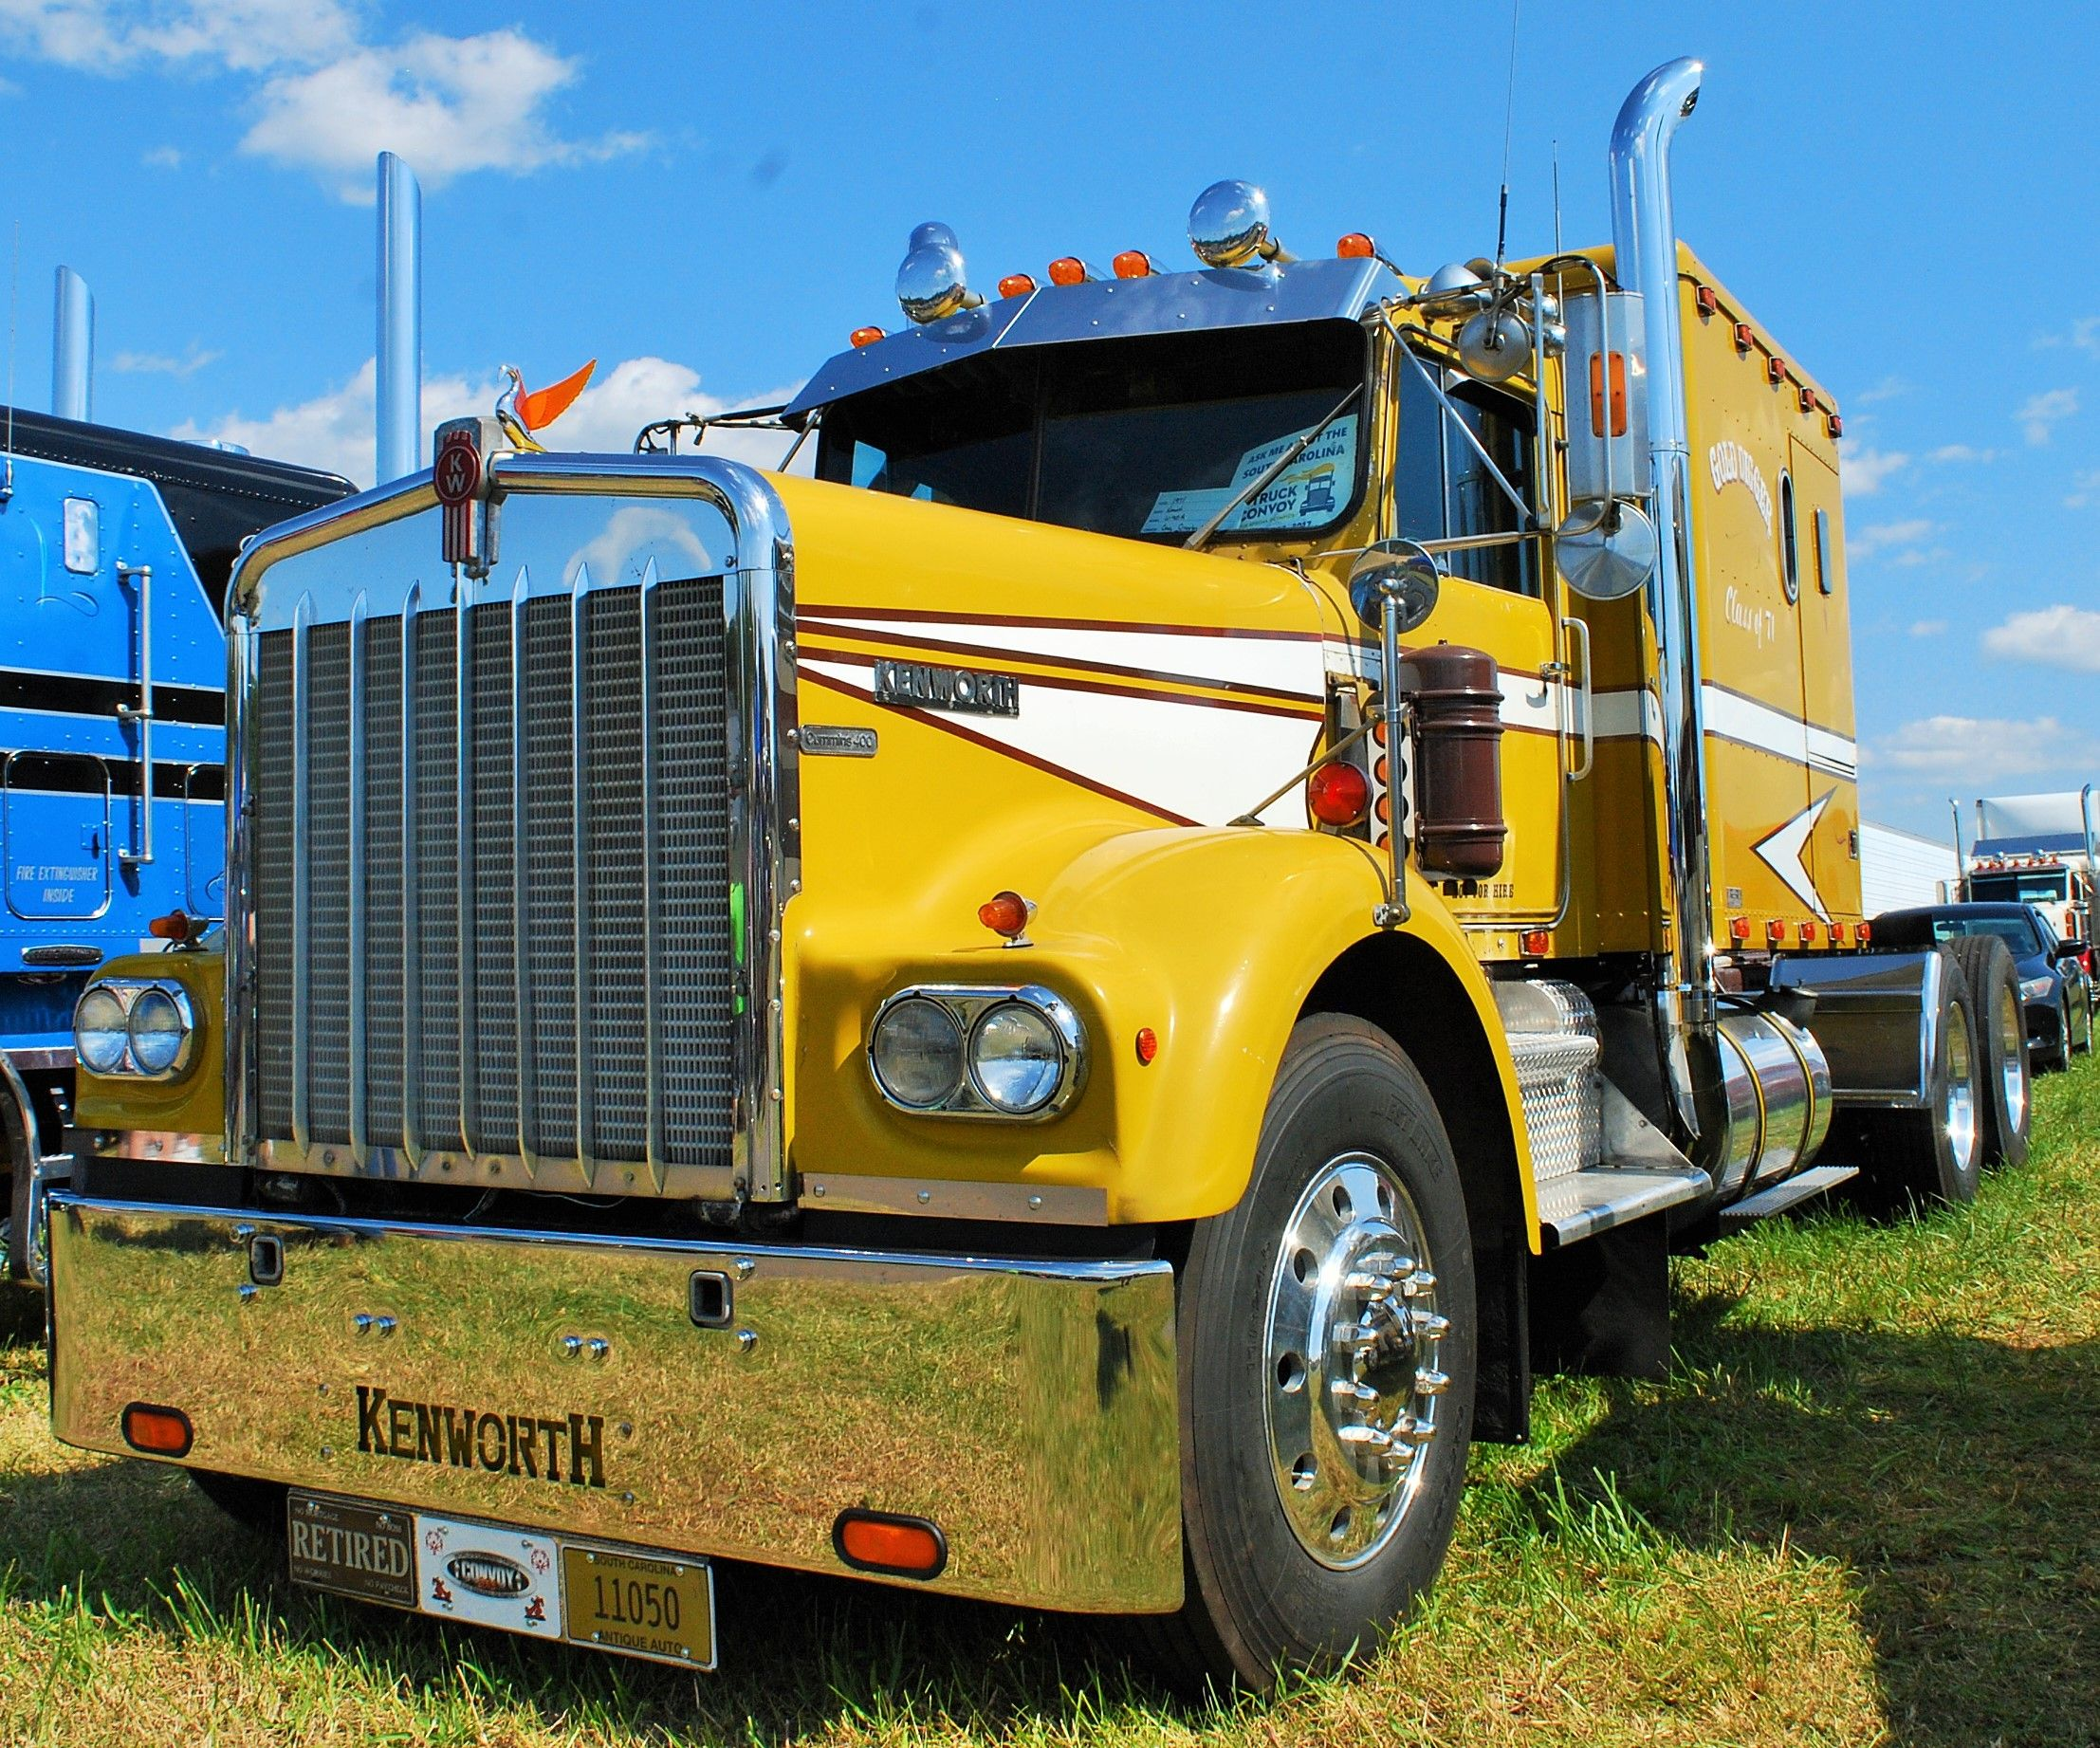 Another beauty I came across at the Southern Classic Truck Show